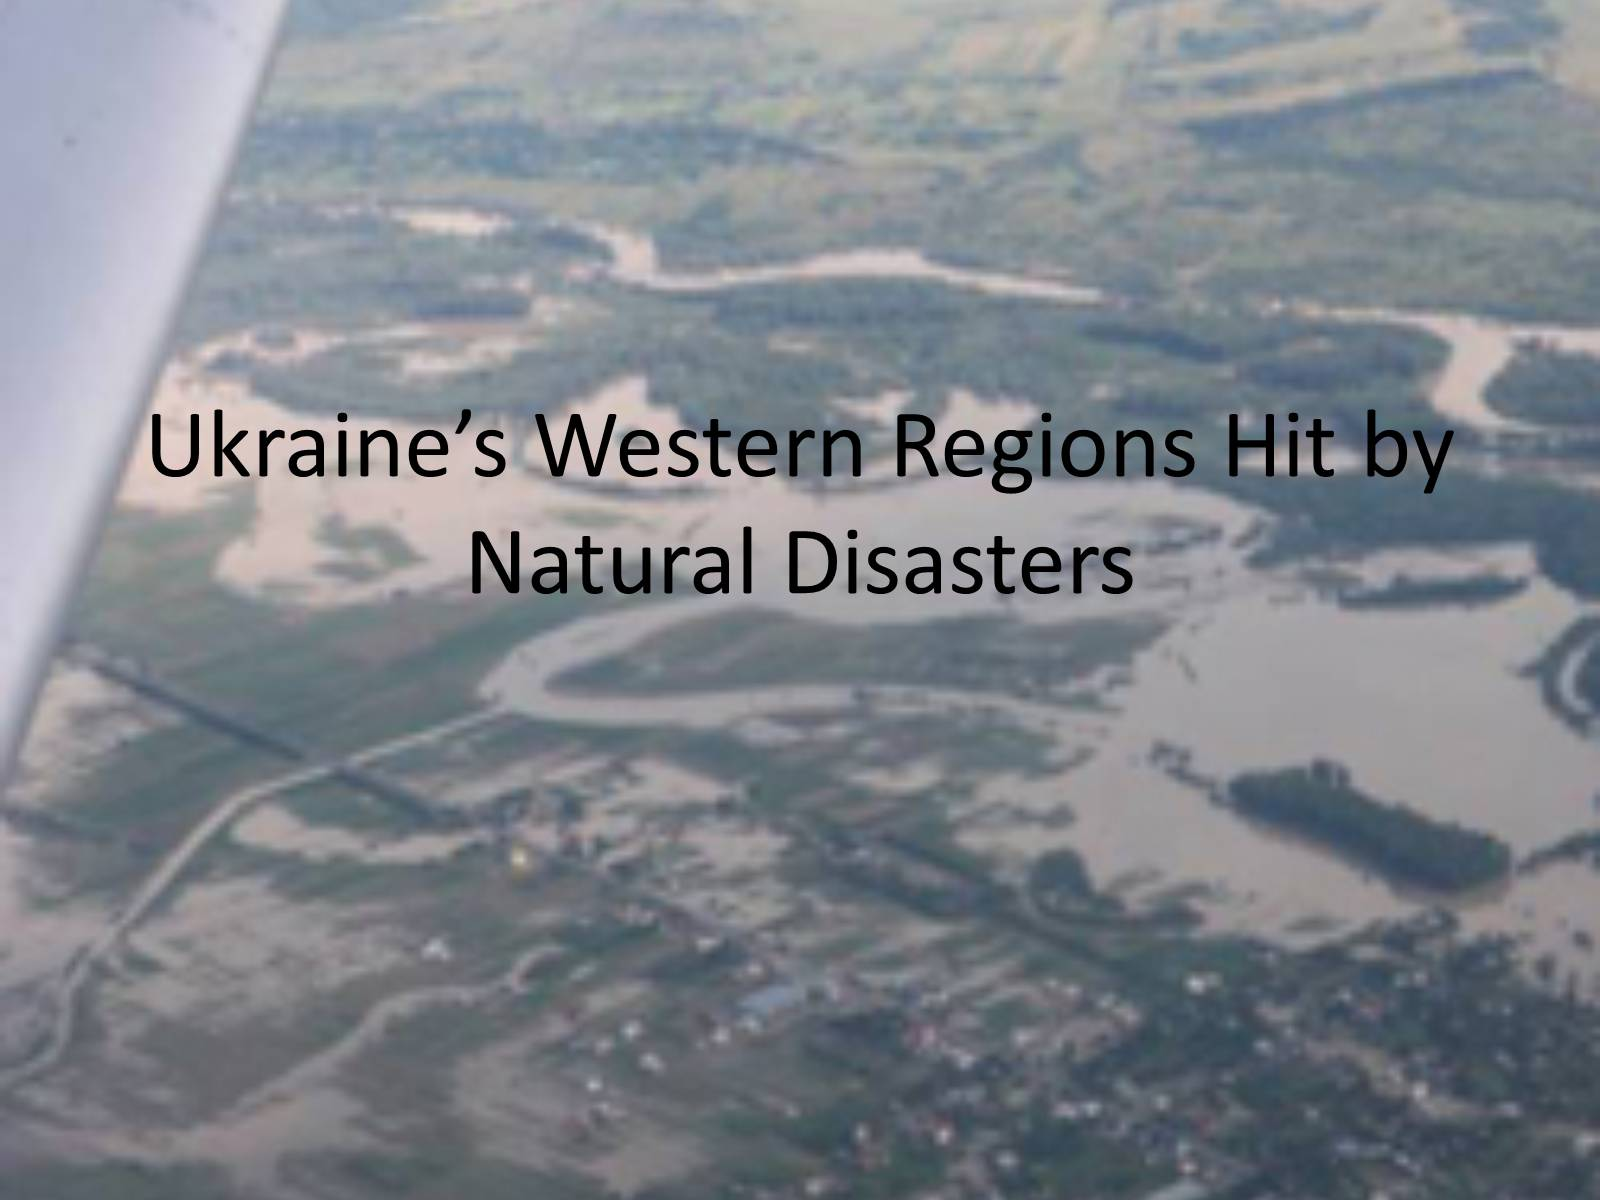 Презентація на тему «Ukraine's Western Regions Hit by Natural Disasters»